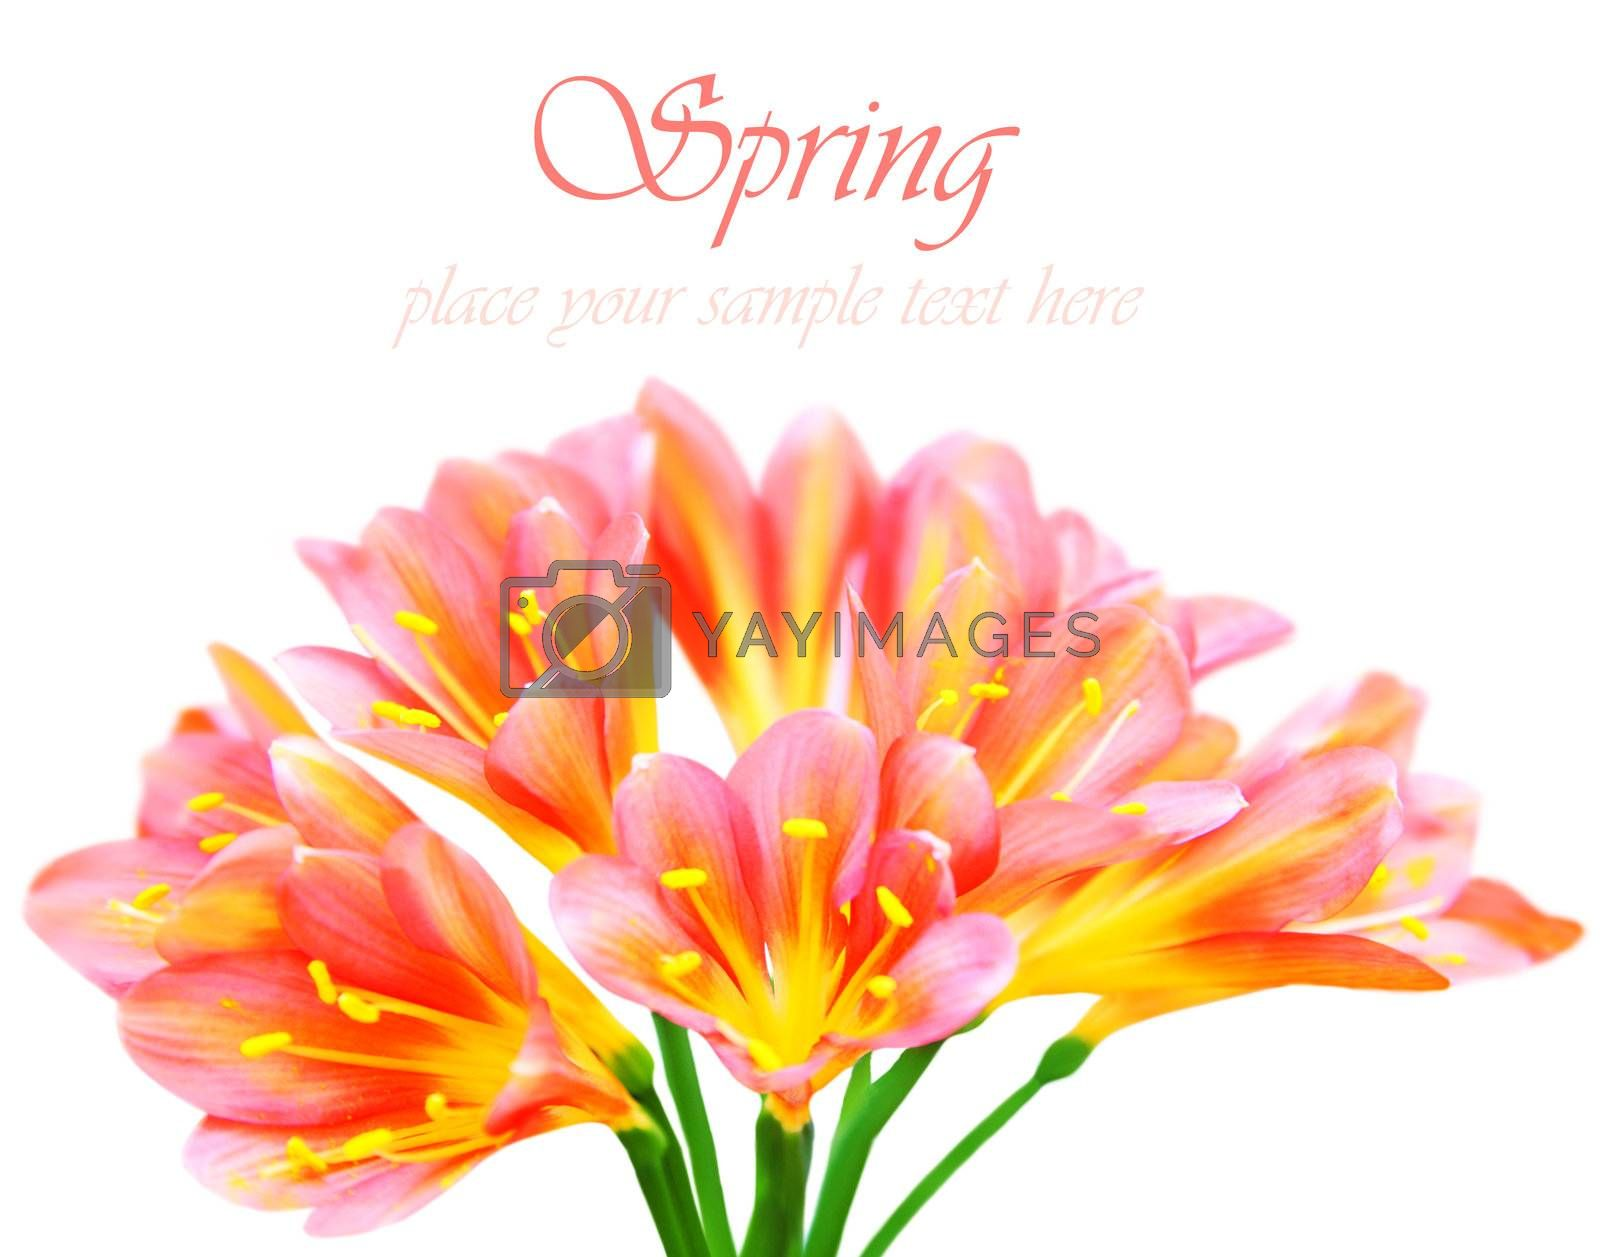 Fresh spring crocus flowers isolated on white background